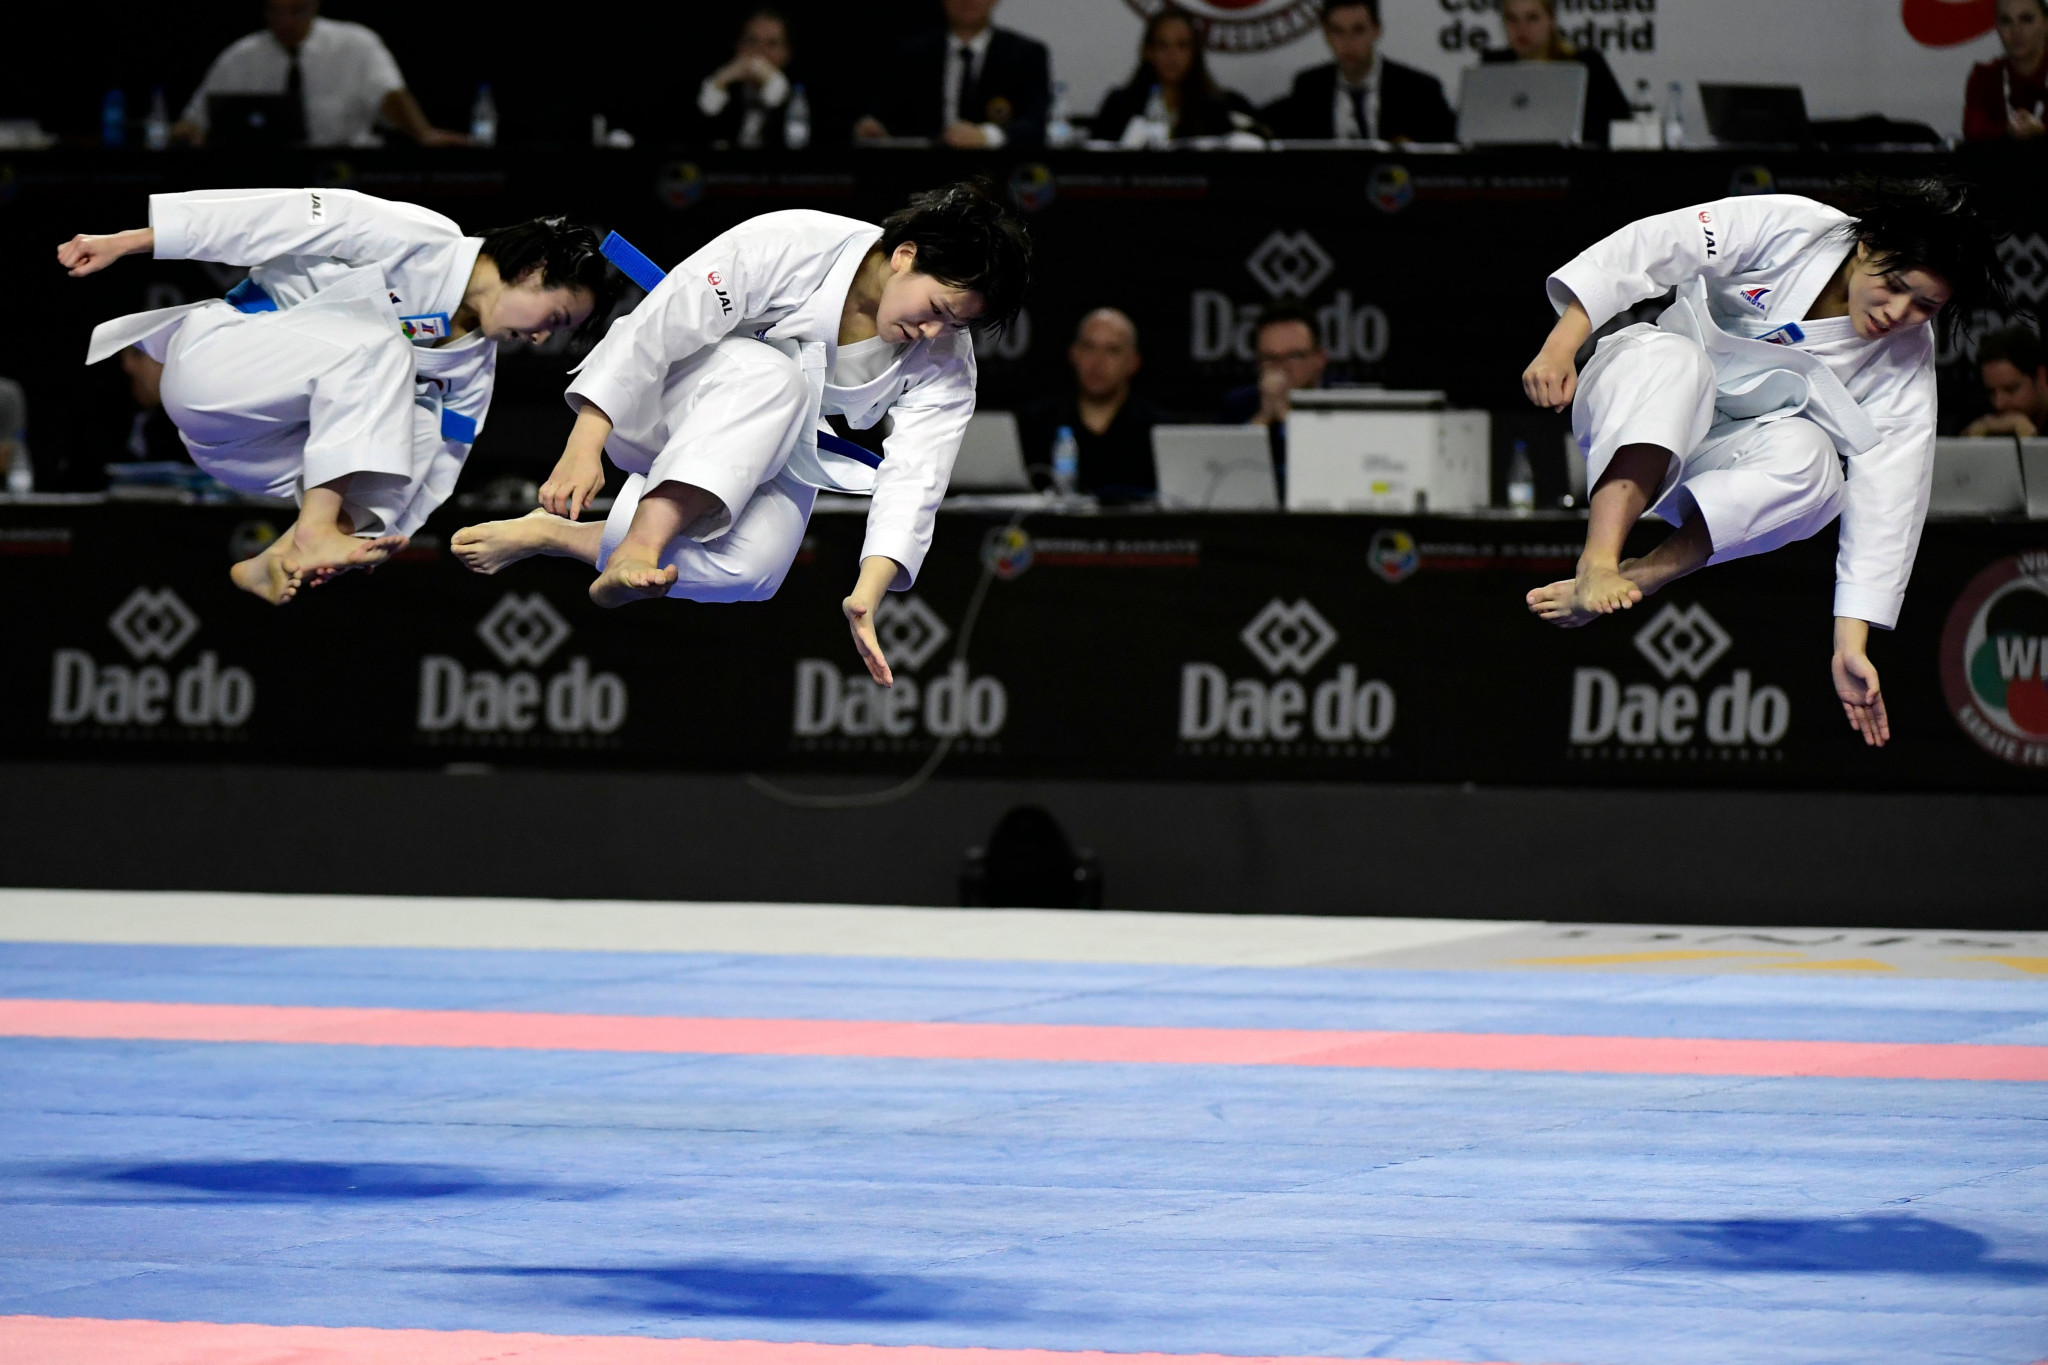 Japan and Iran strike gold as WKF flag passed to 2020 hosts Dubai at Karate World Championships